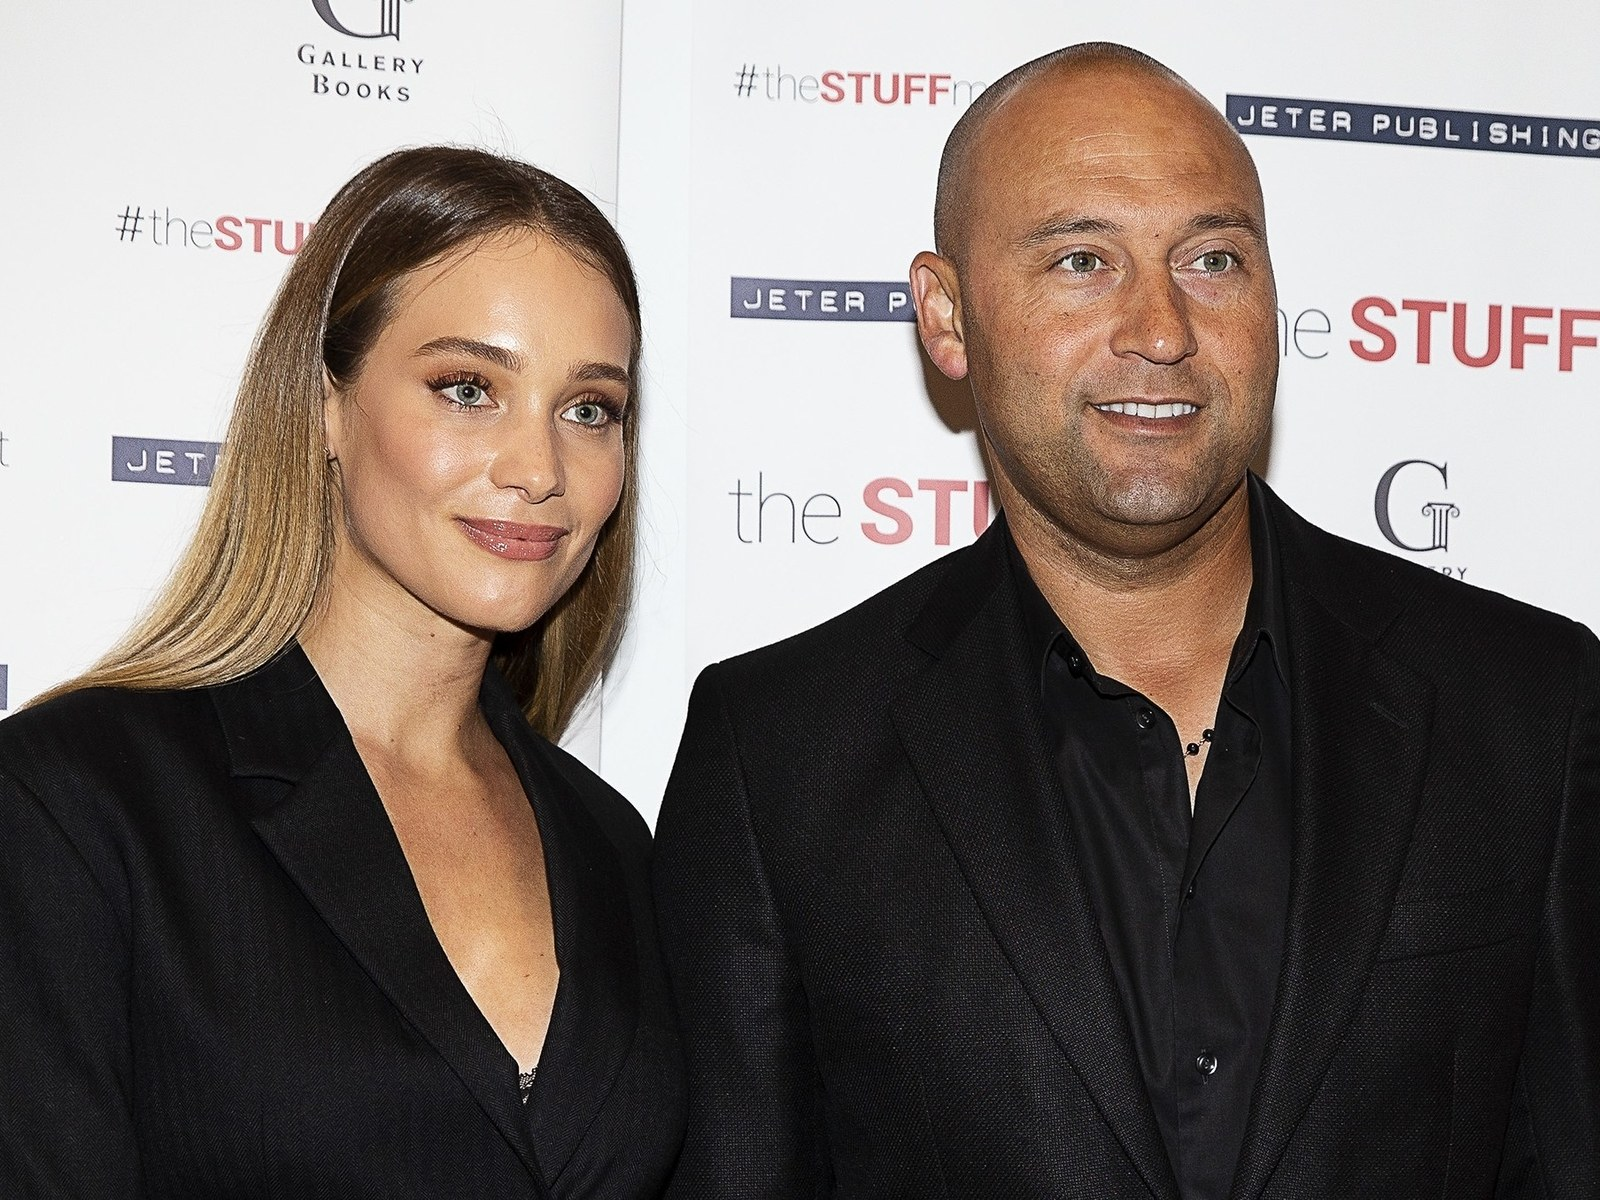 Hannah and Derek Jeter attend an event in NYC.